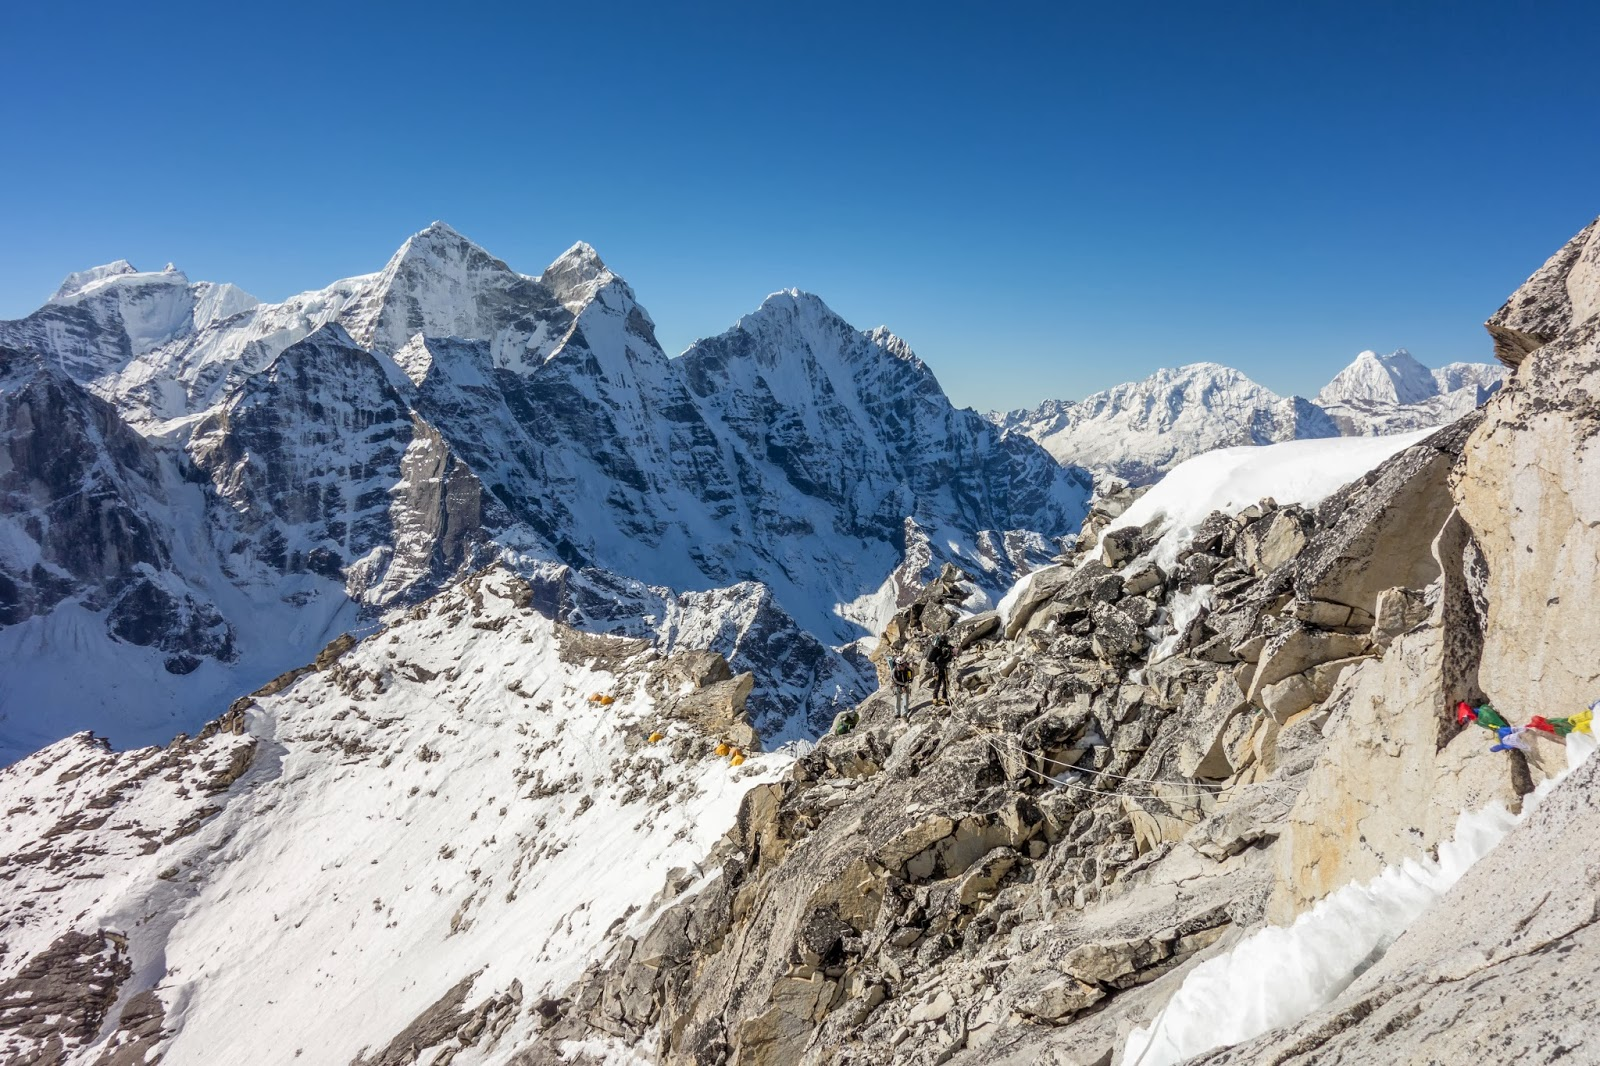 Route between Camp 1 and Camp 2 on Ama Dablam